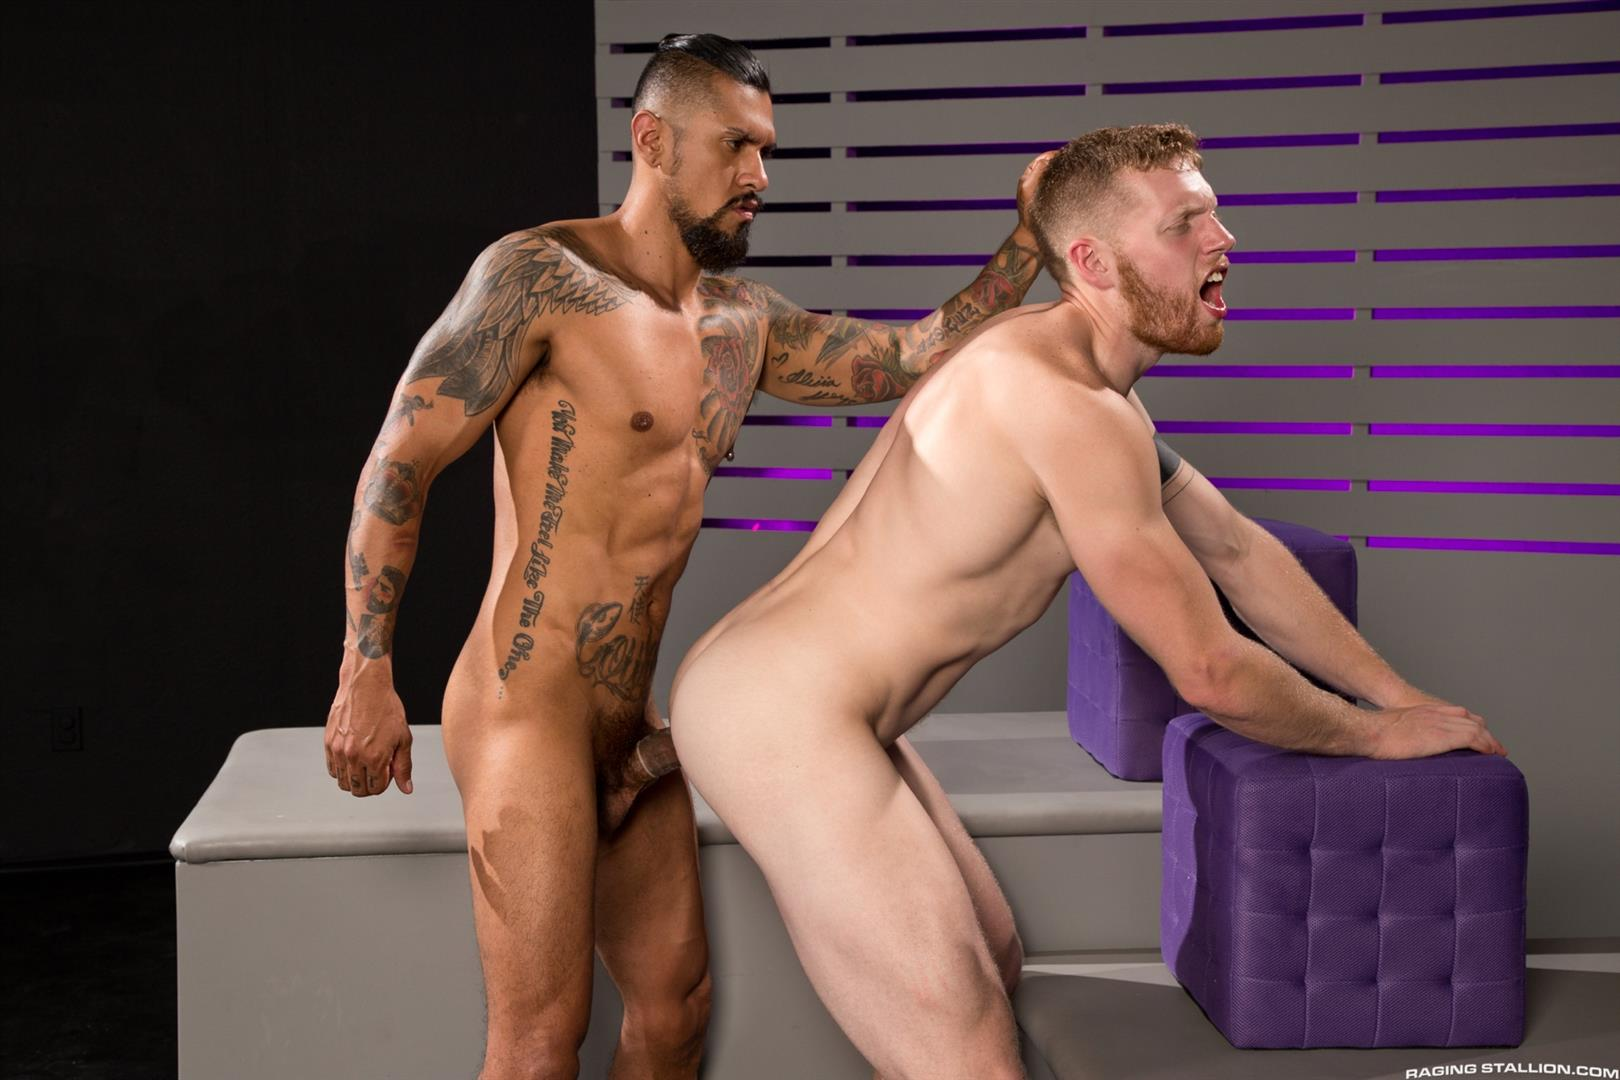 Raging-Stallion-Boomer-Banks-and-Cass-Bolton-Big-Uncut-Cock-Redhead-Amateur-Gay-Porn-12 Boomer Banks Fucking Redhead Muscle Hunk Cass Bolton